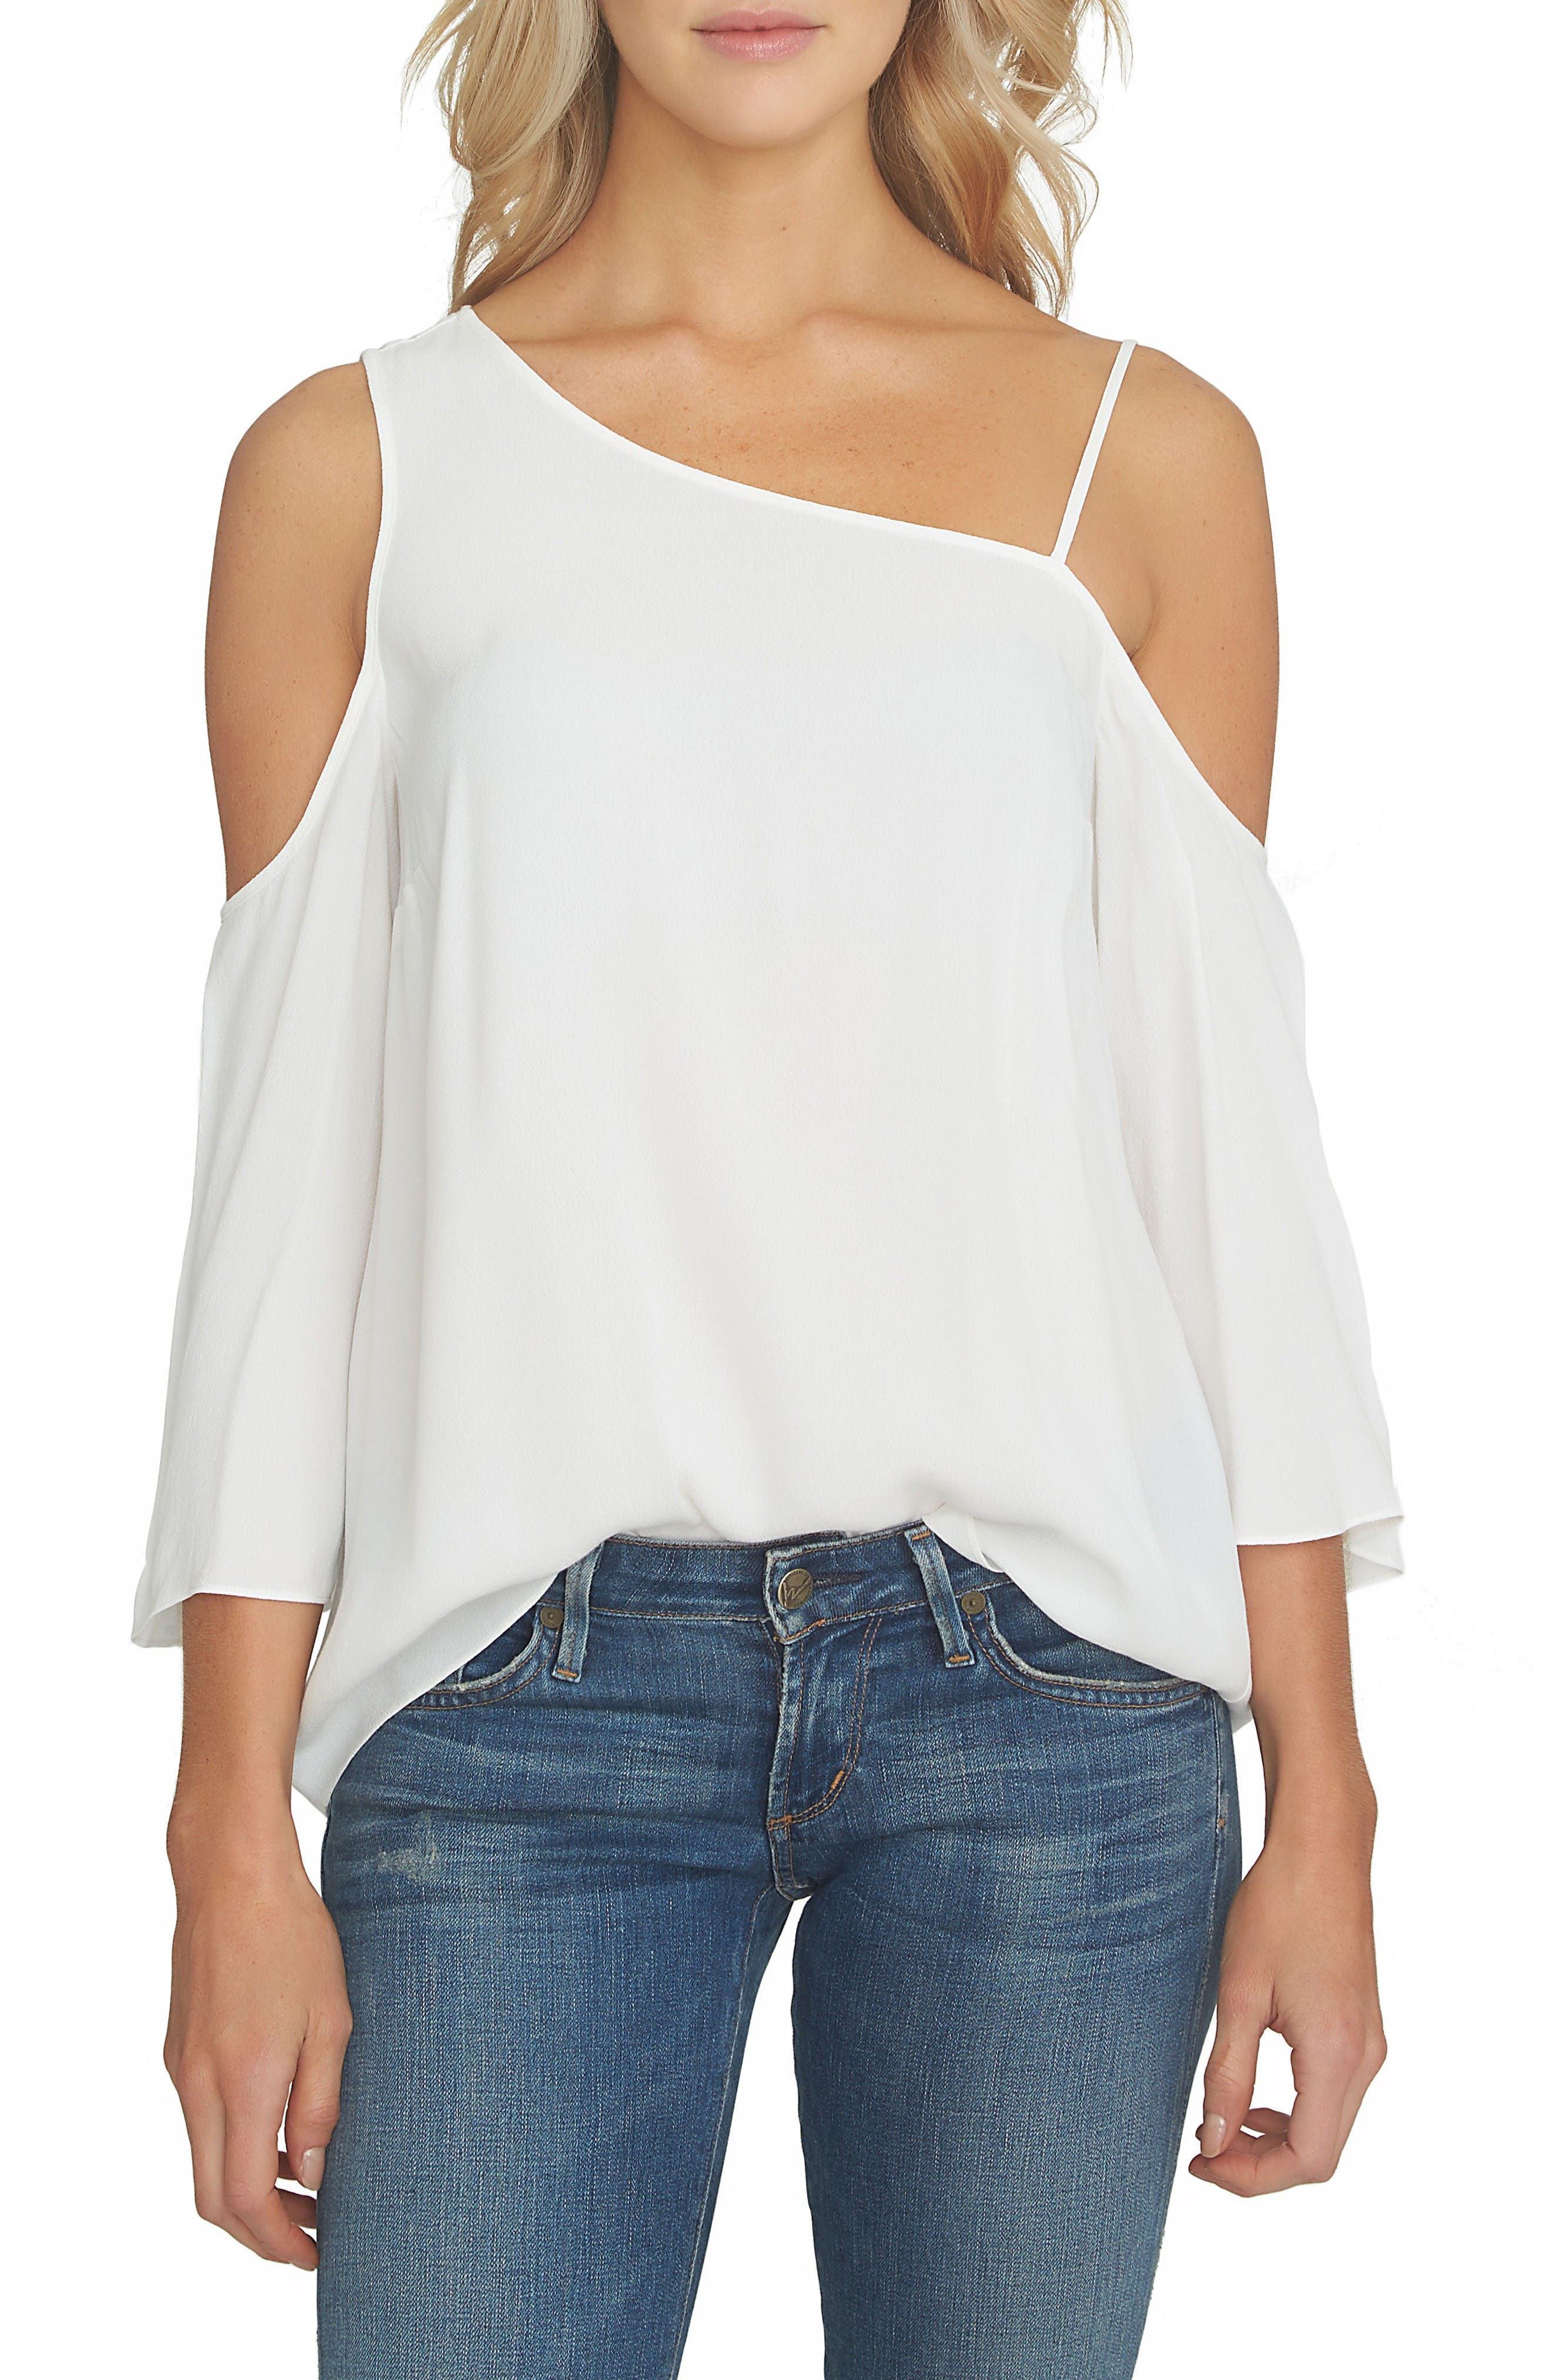 Alternate Image 1 Selected - 1.STATE One-Shoulder Top